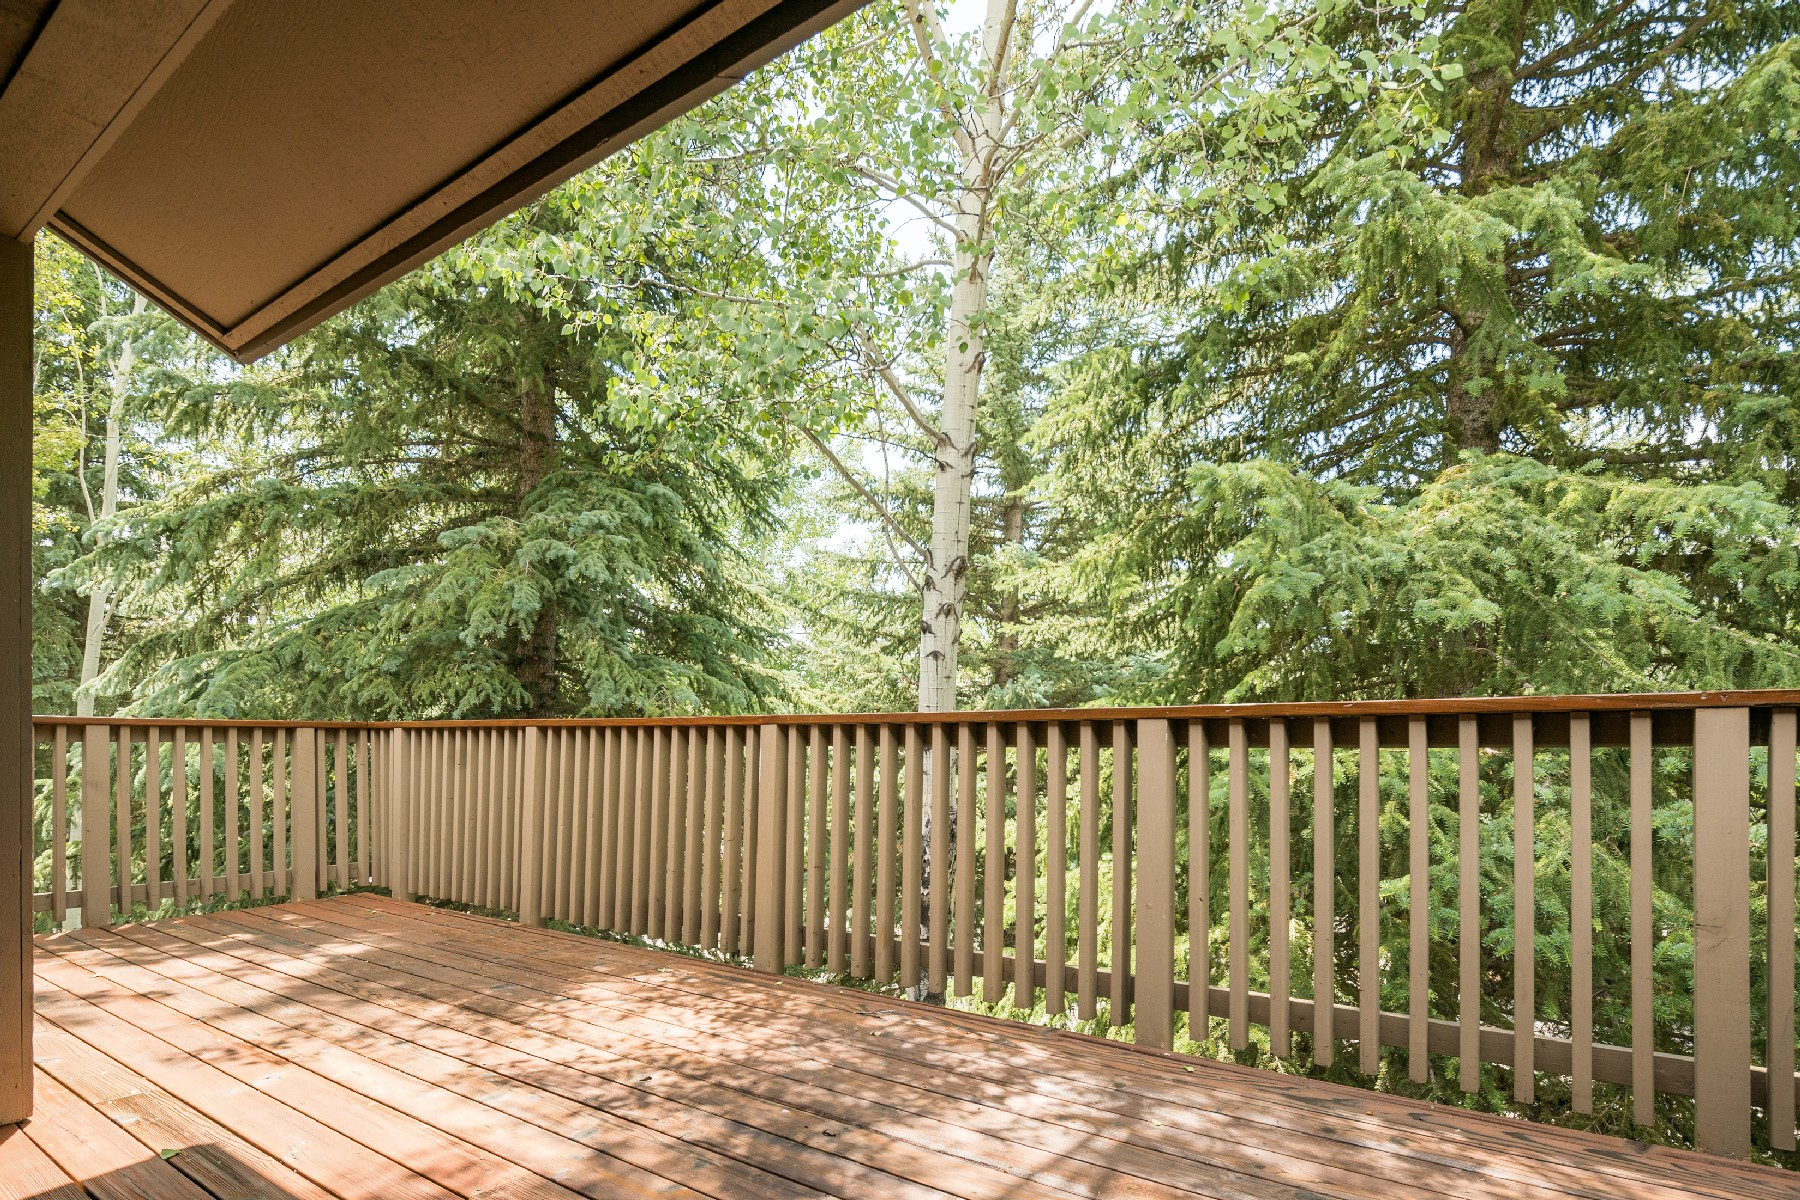 Additional photo for property listing at Best Deck At The Bluff 4125 Bluff Dr Sun Valley, Idaho 83353 United States